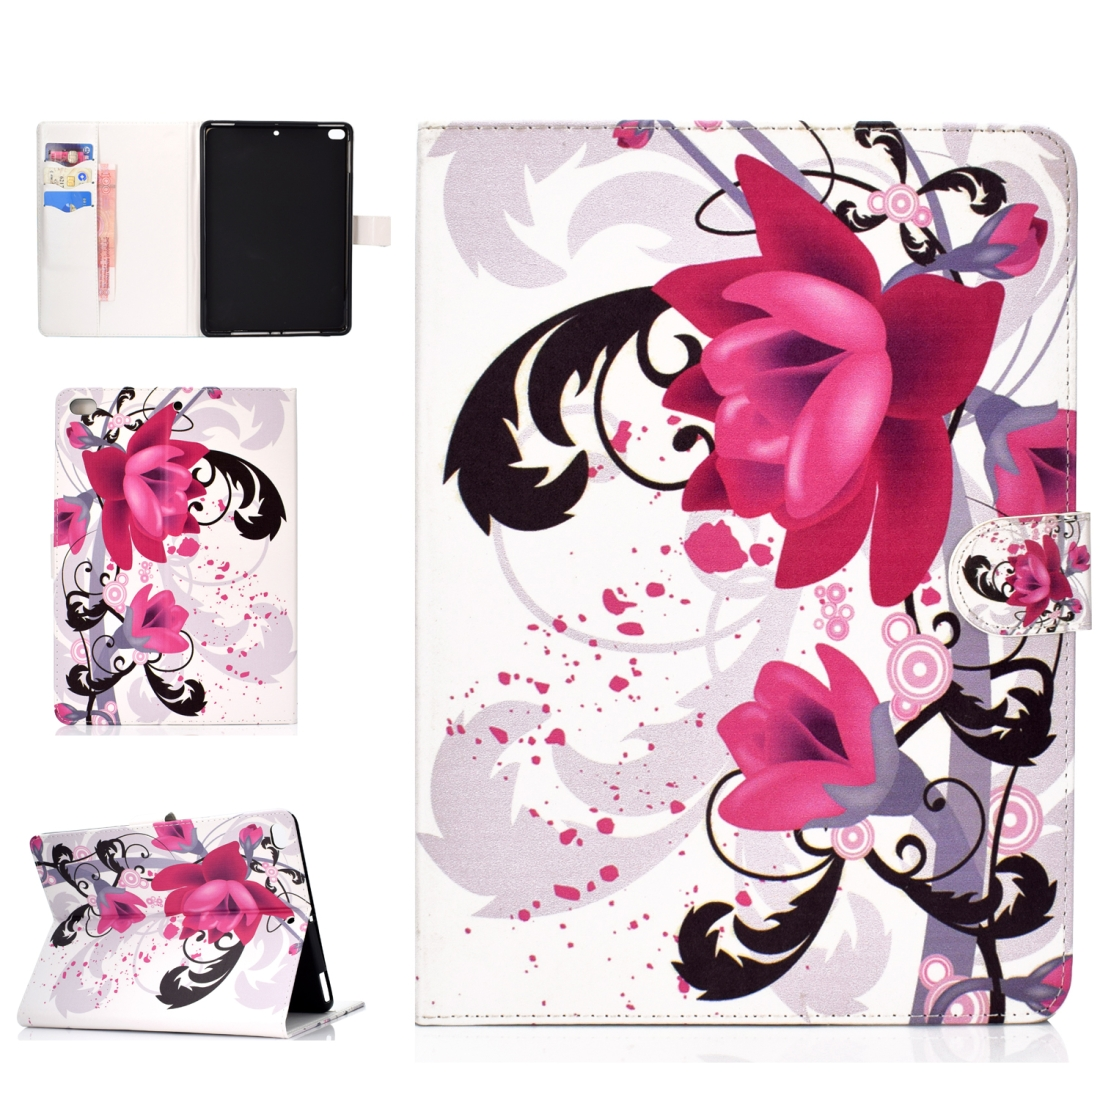 iPad 5th Generation Case Fits iPad 5,6,8, Stylish Leather Design & Auto Sleep Function (Flower)